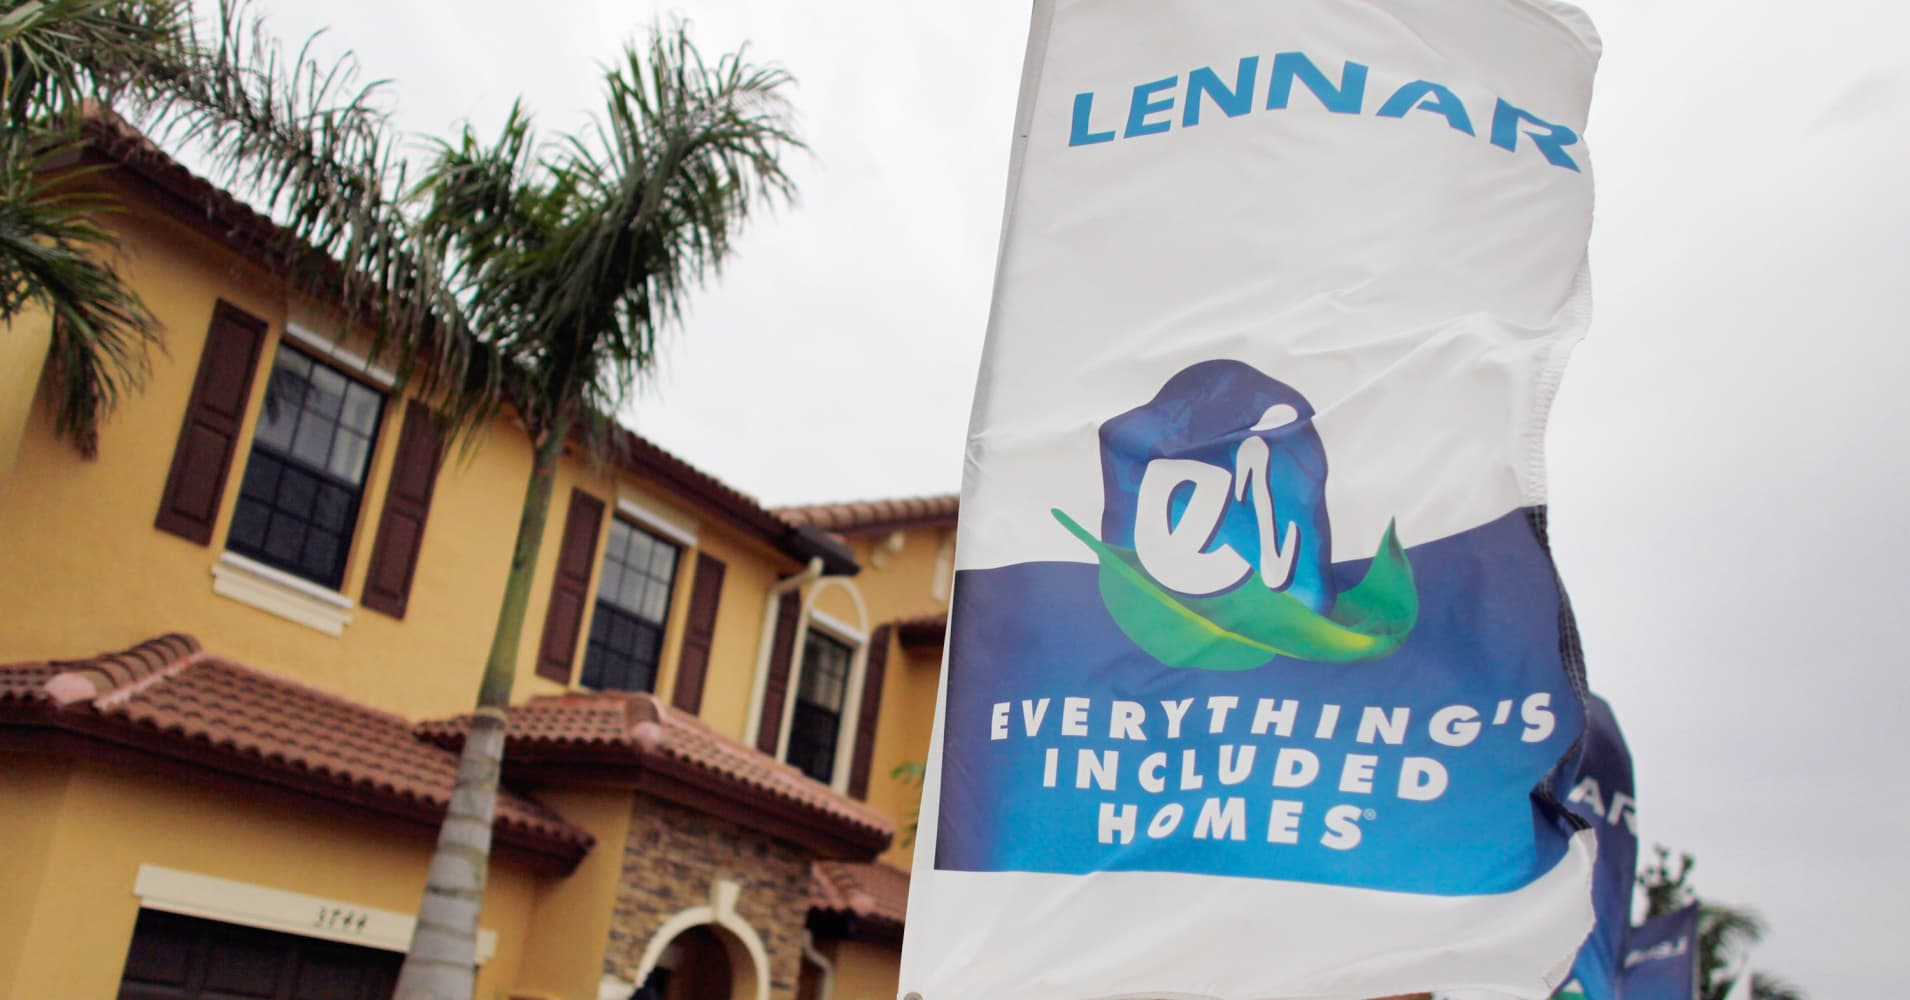 Lennar expects Irma to cause delays in home deliveries